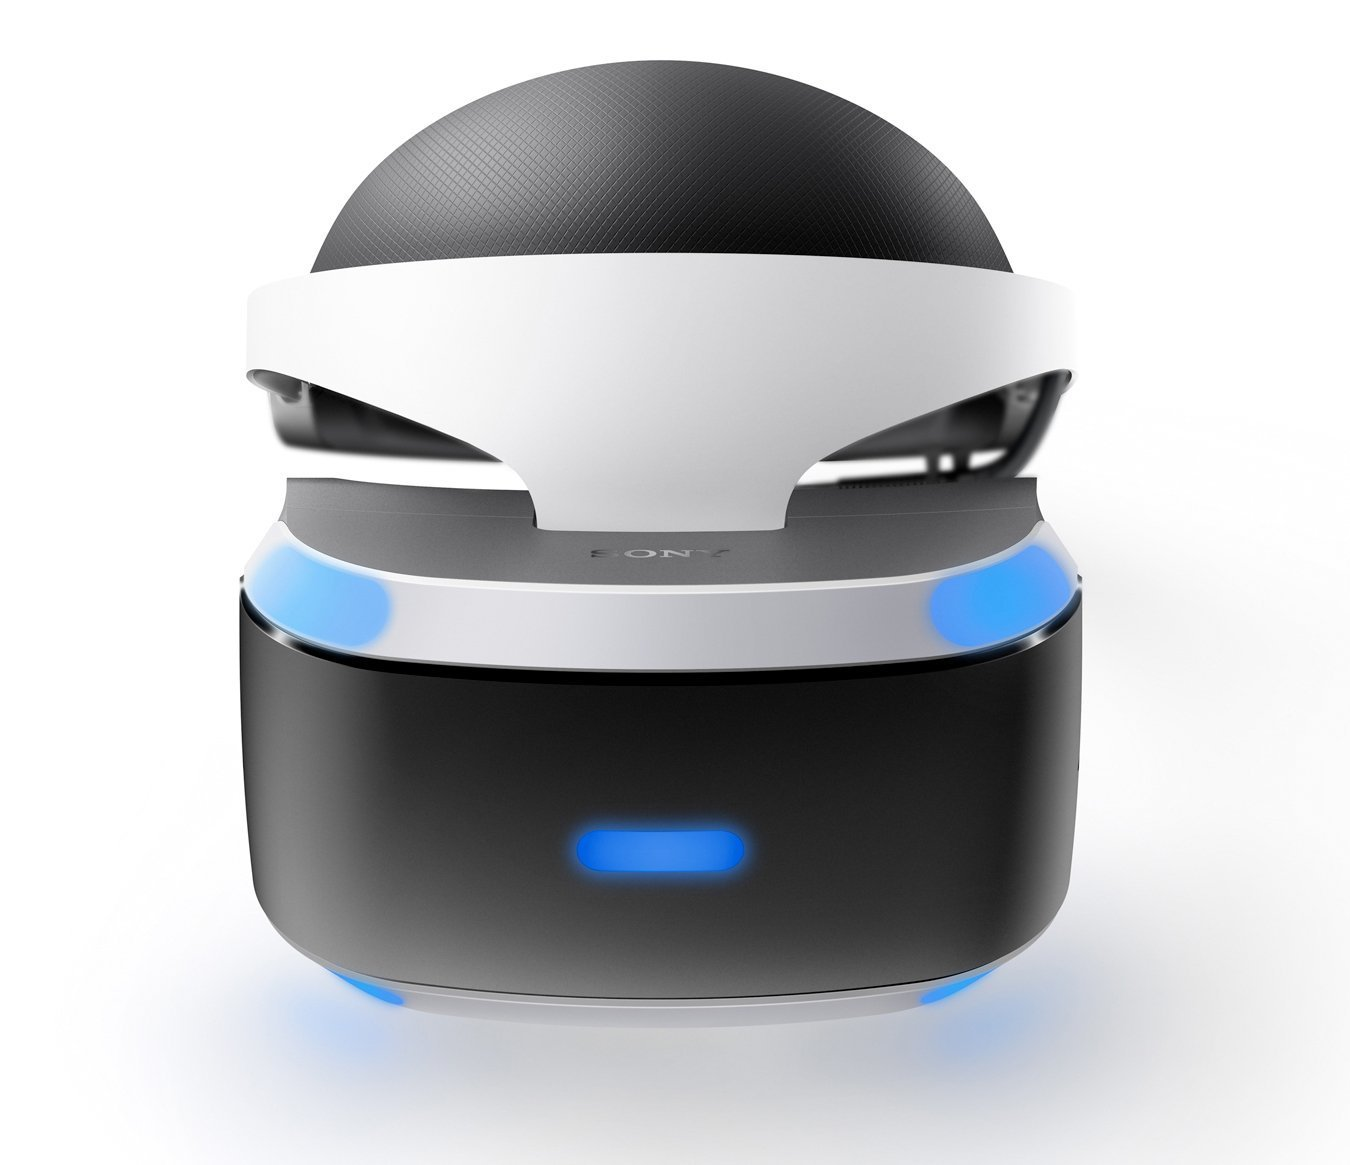 frontal image of Playstation VR headset